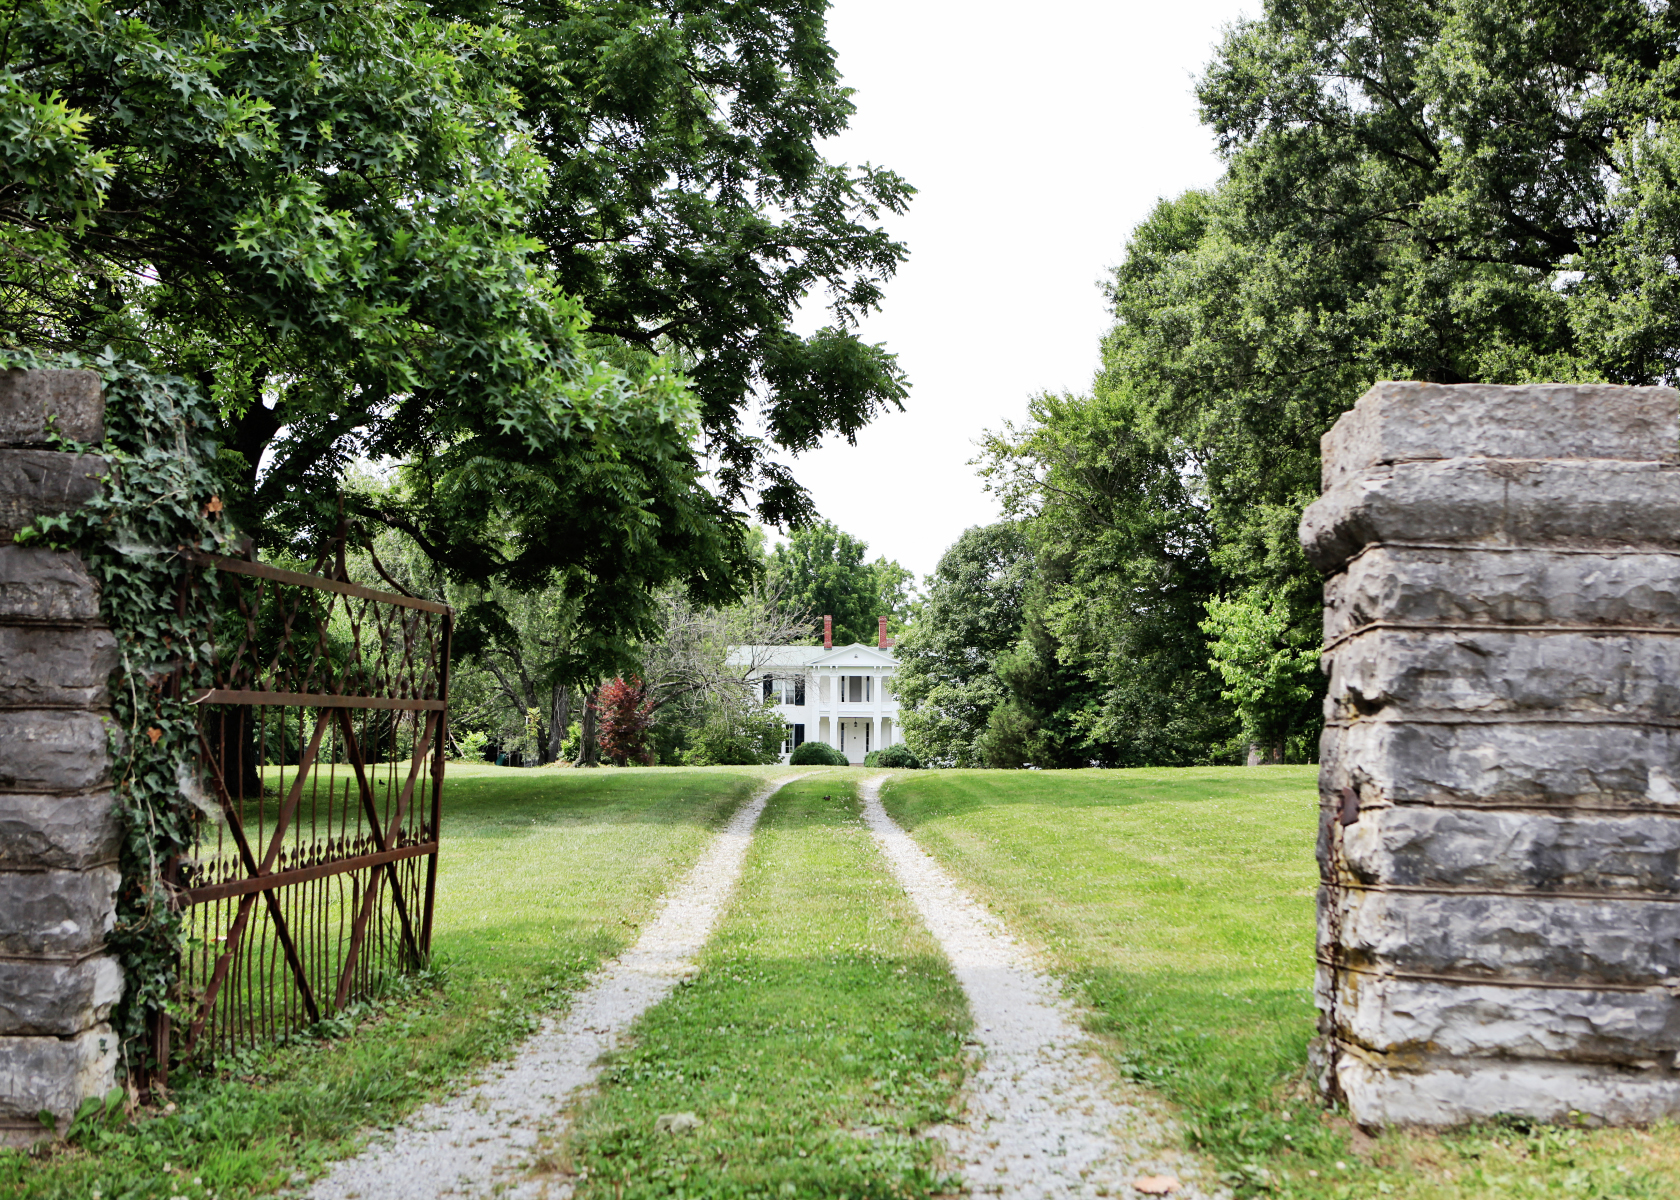 What to see and do in Lexington, Kentucky.